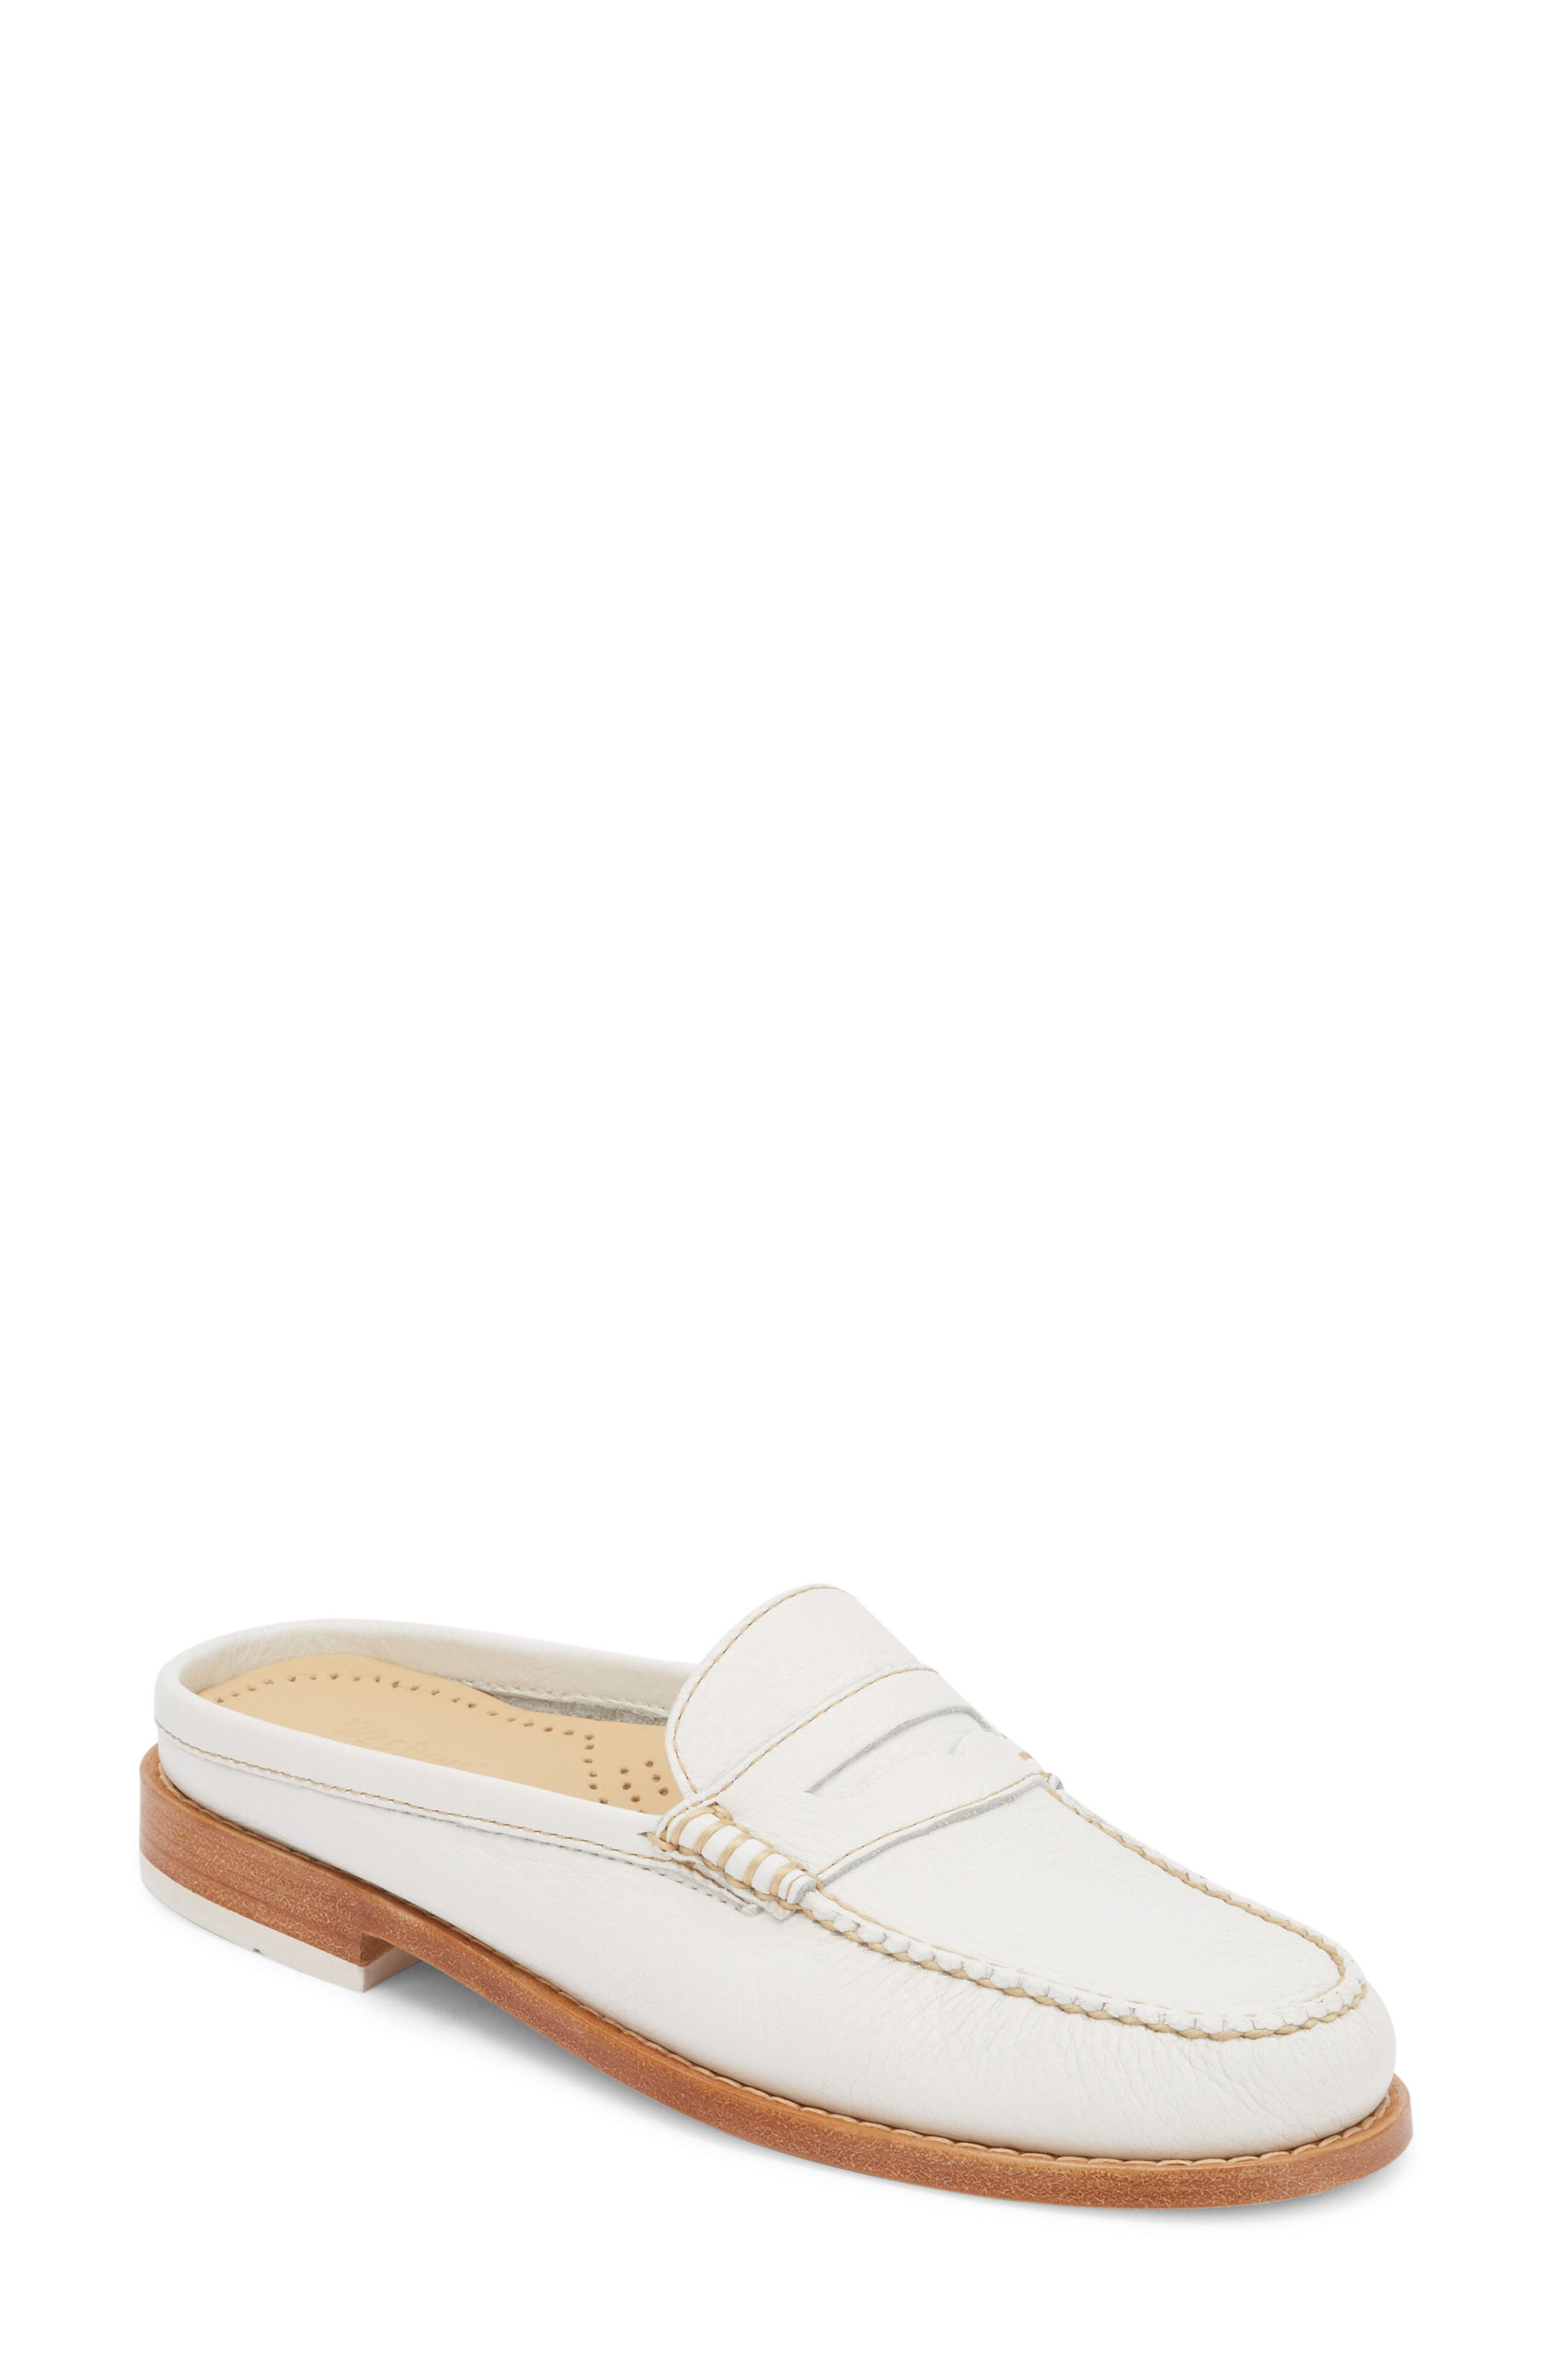 Wynn Loafer Mule,                             Main thumbnail 1, color,                             WHITE/ WHITE LEATHER